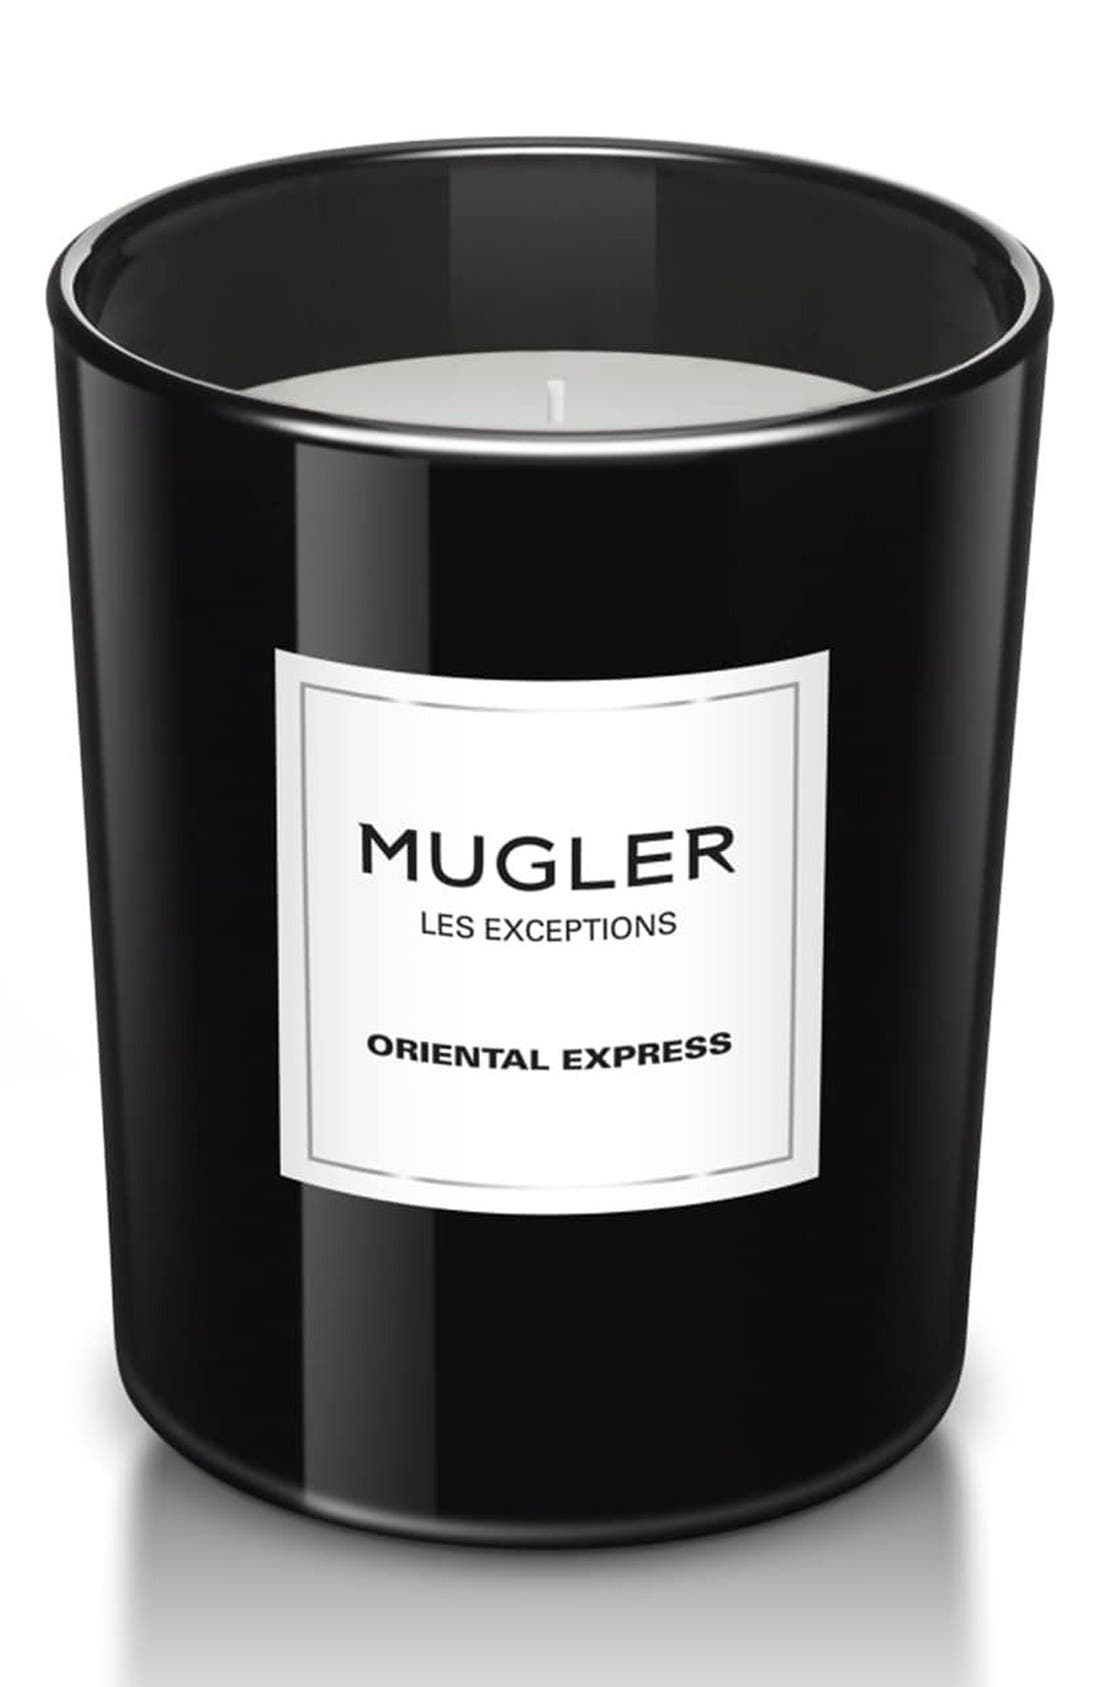 Main Image - Mugler 'Les Exceptions - Oriental Express' Candle